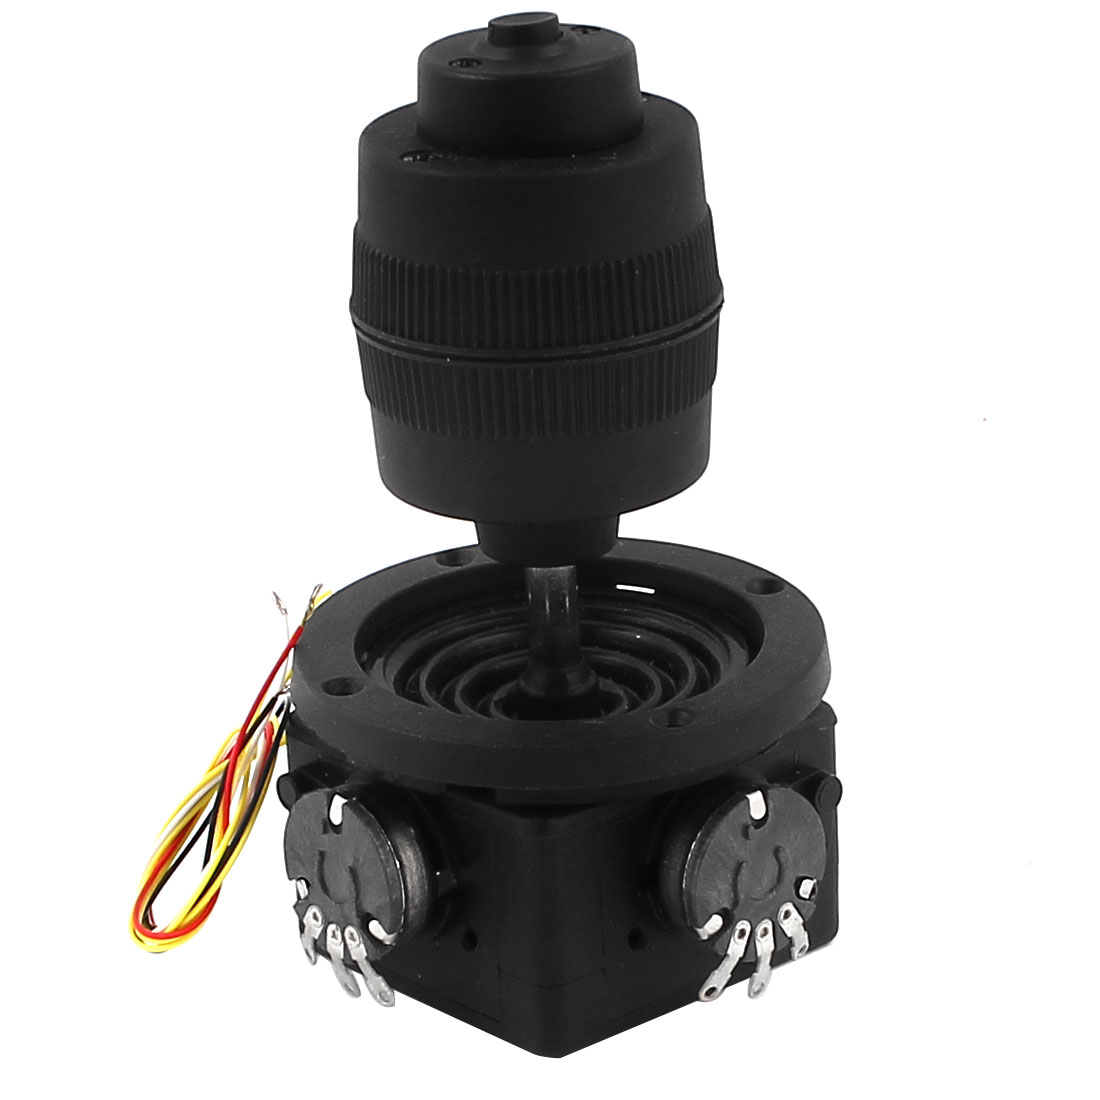 Single Linear 10K Ohm Synthetic Carbon Pushbutton Switch Joystick Potentiometer